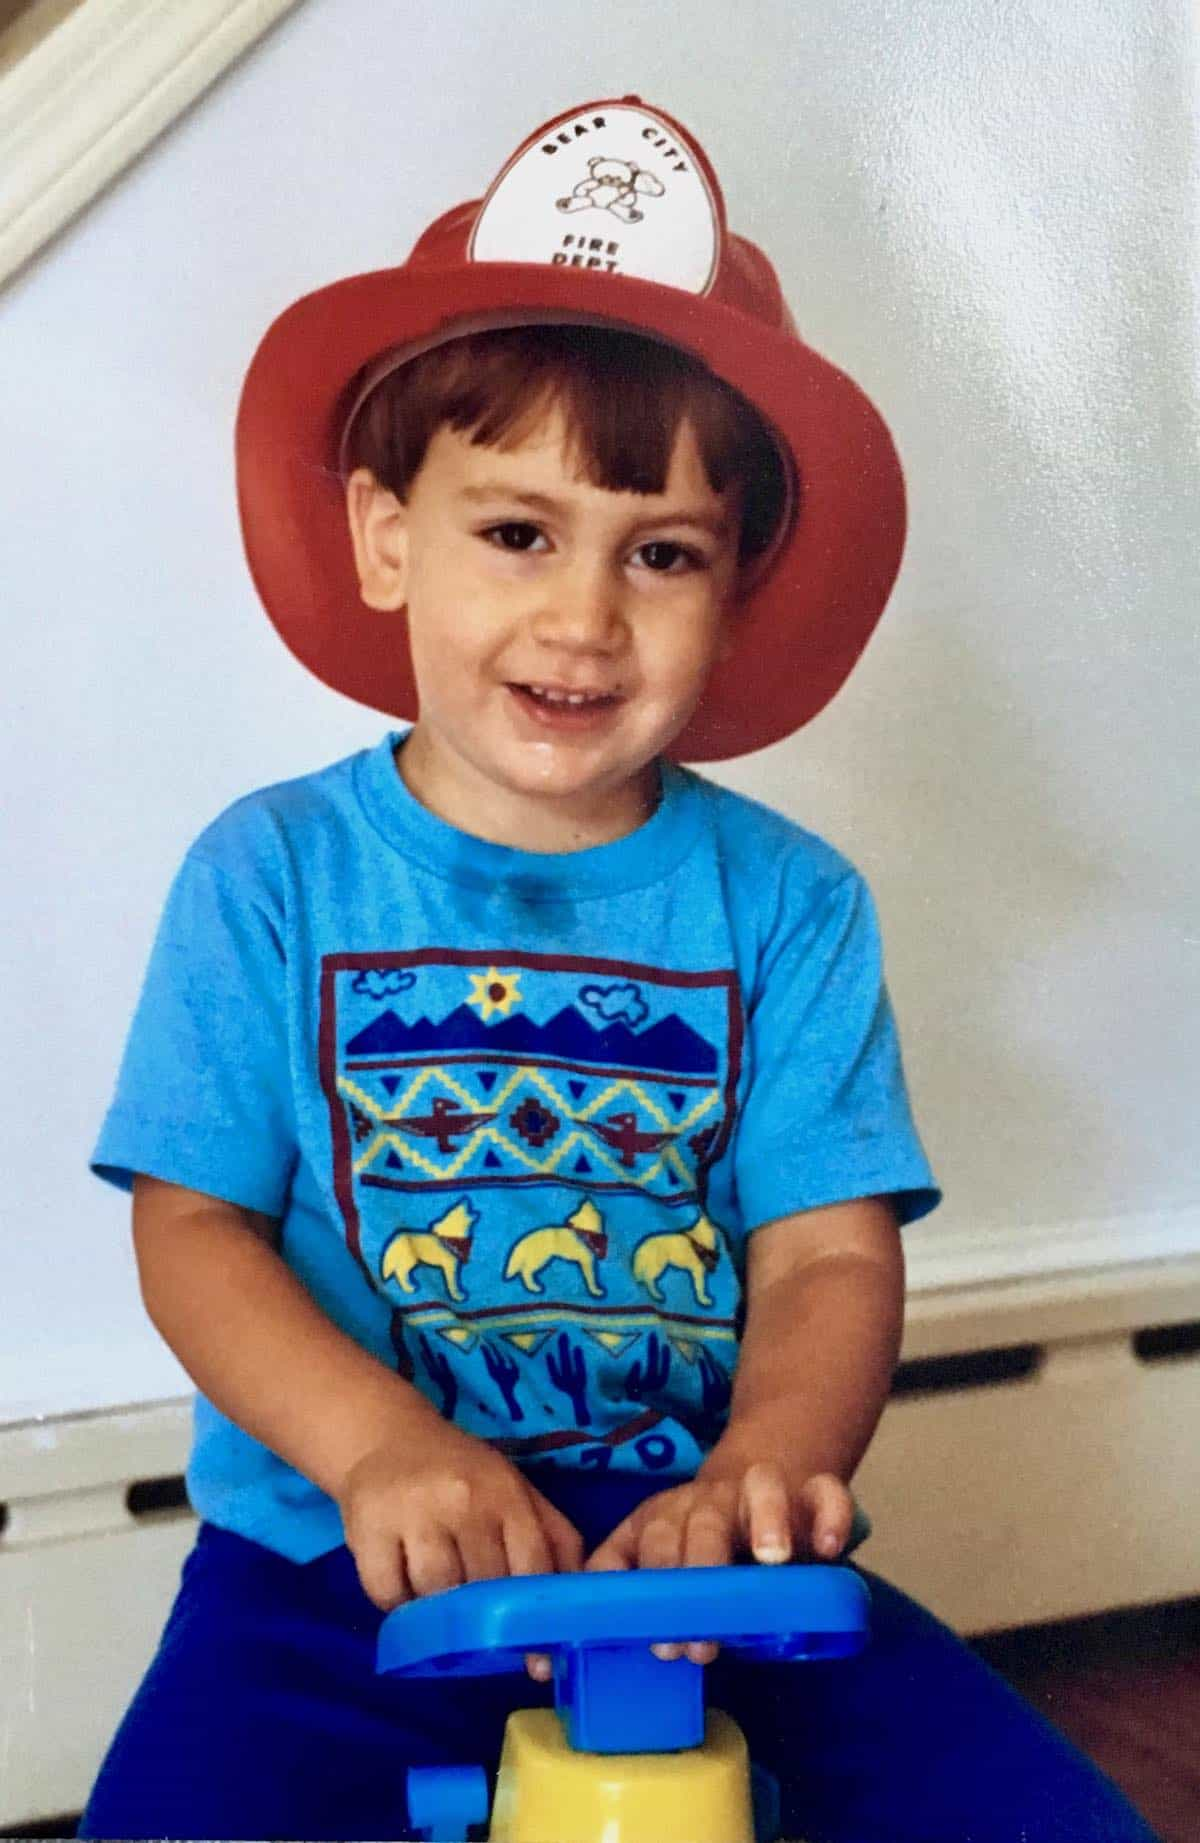 toddler William wearing a fireman's hat